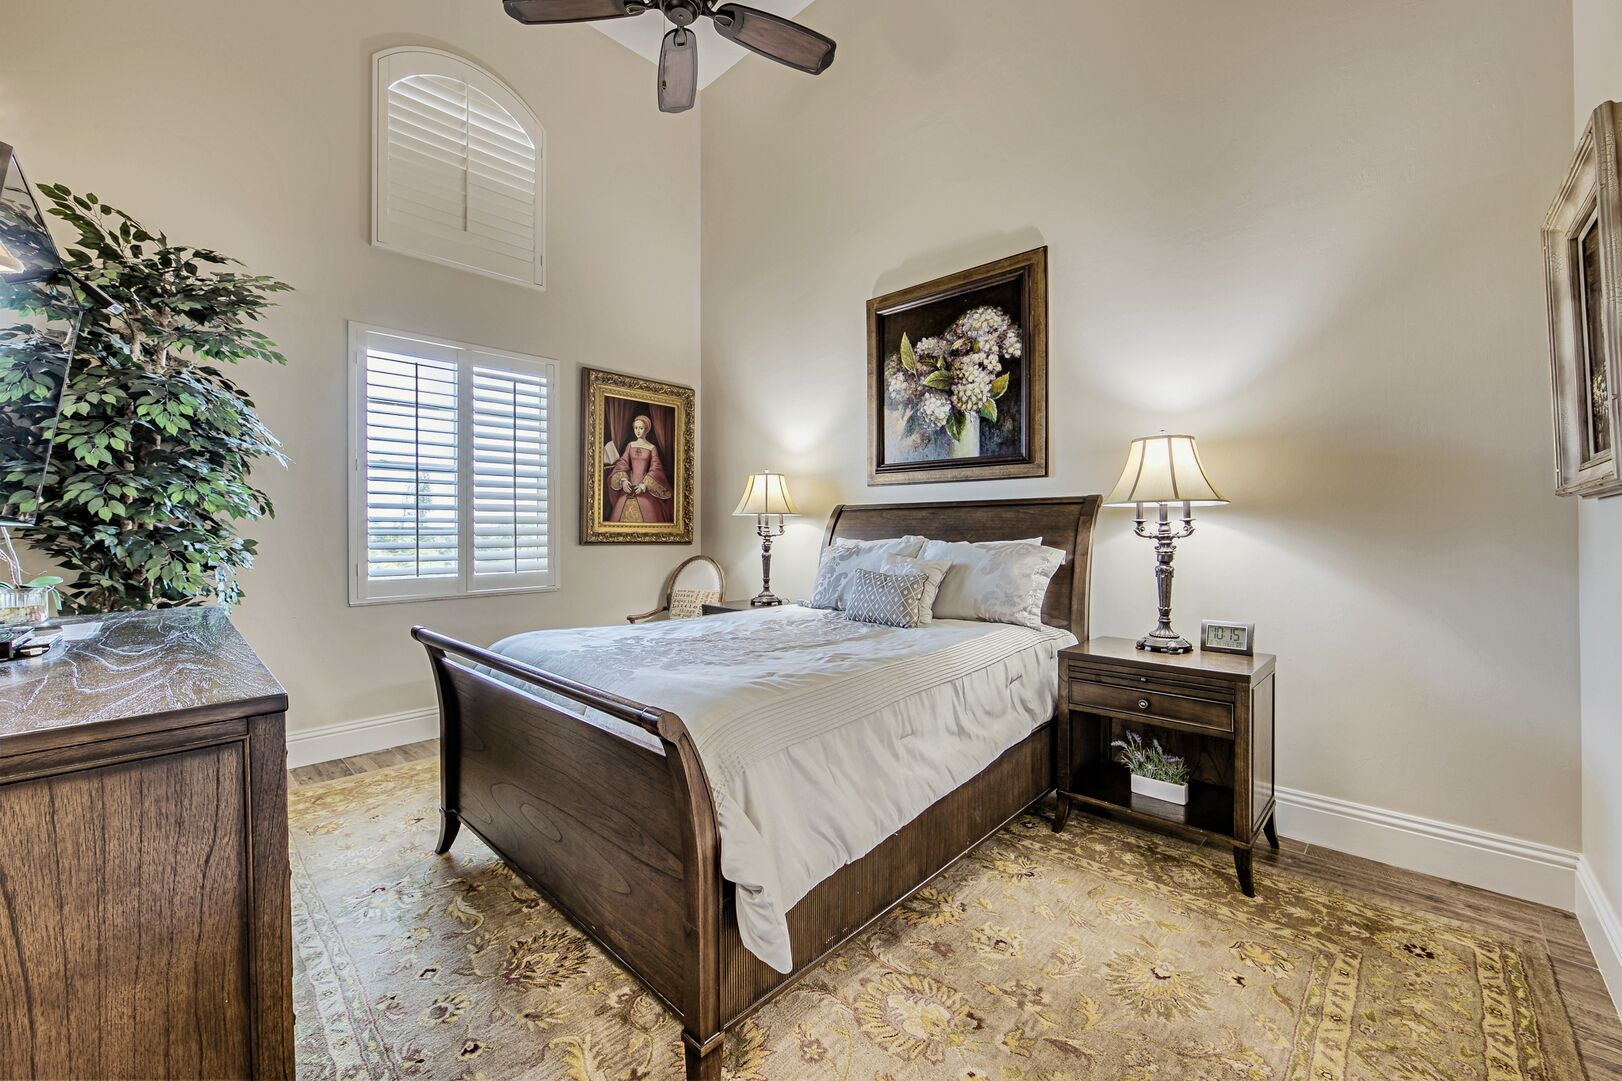 Large Bed, Dresser, Ceiling Fan, Nightstands, and Table Lamps.